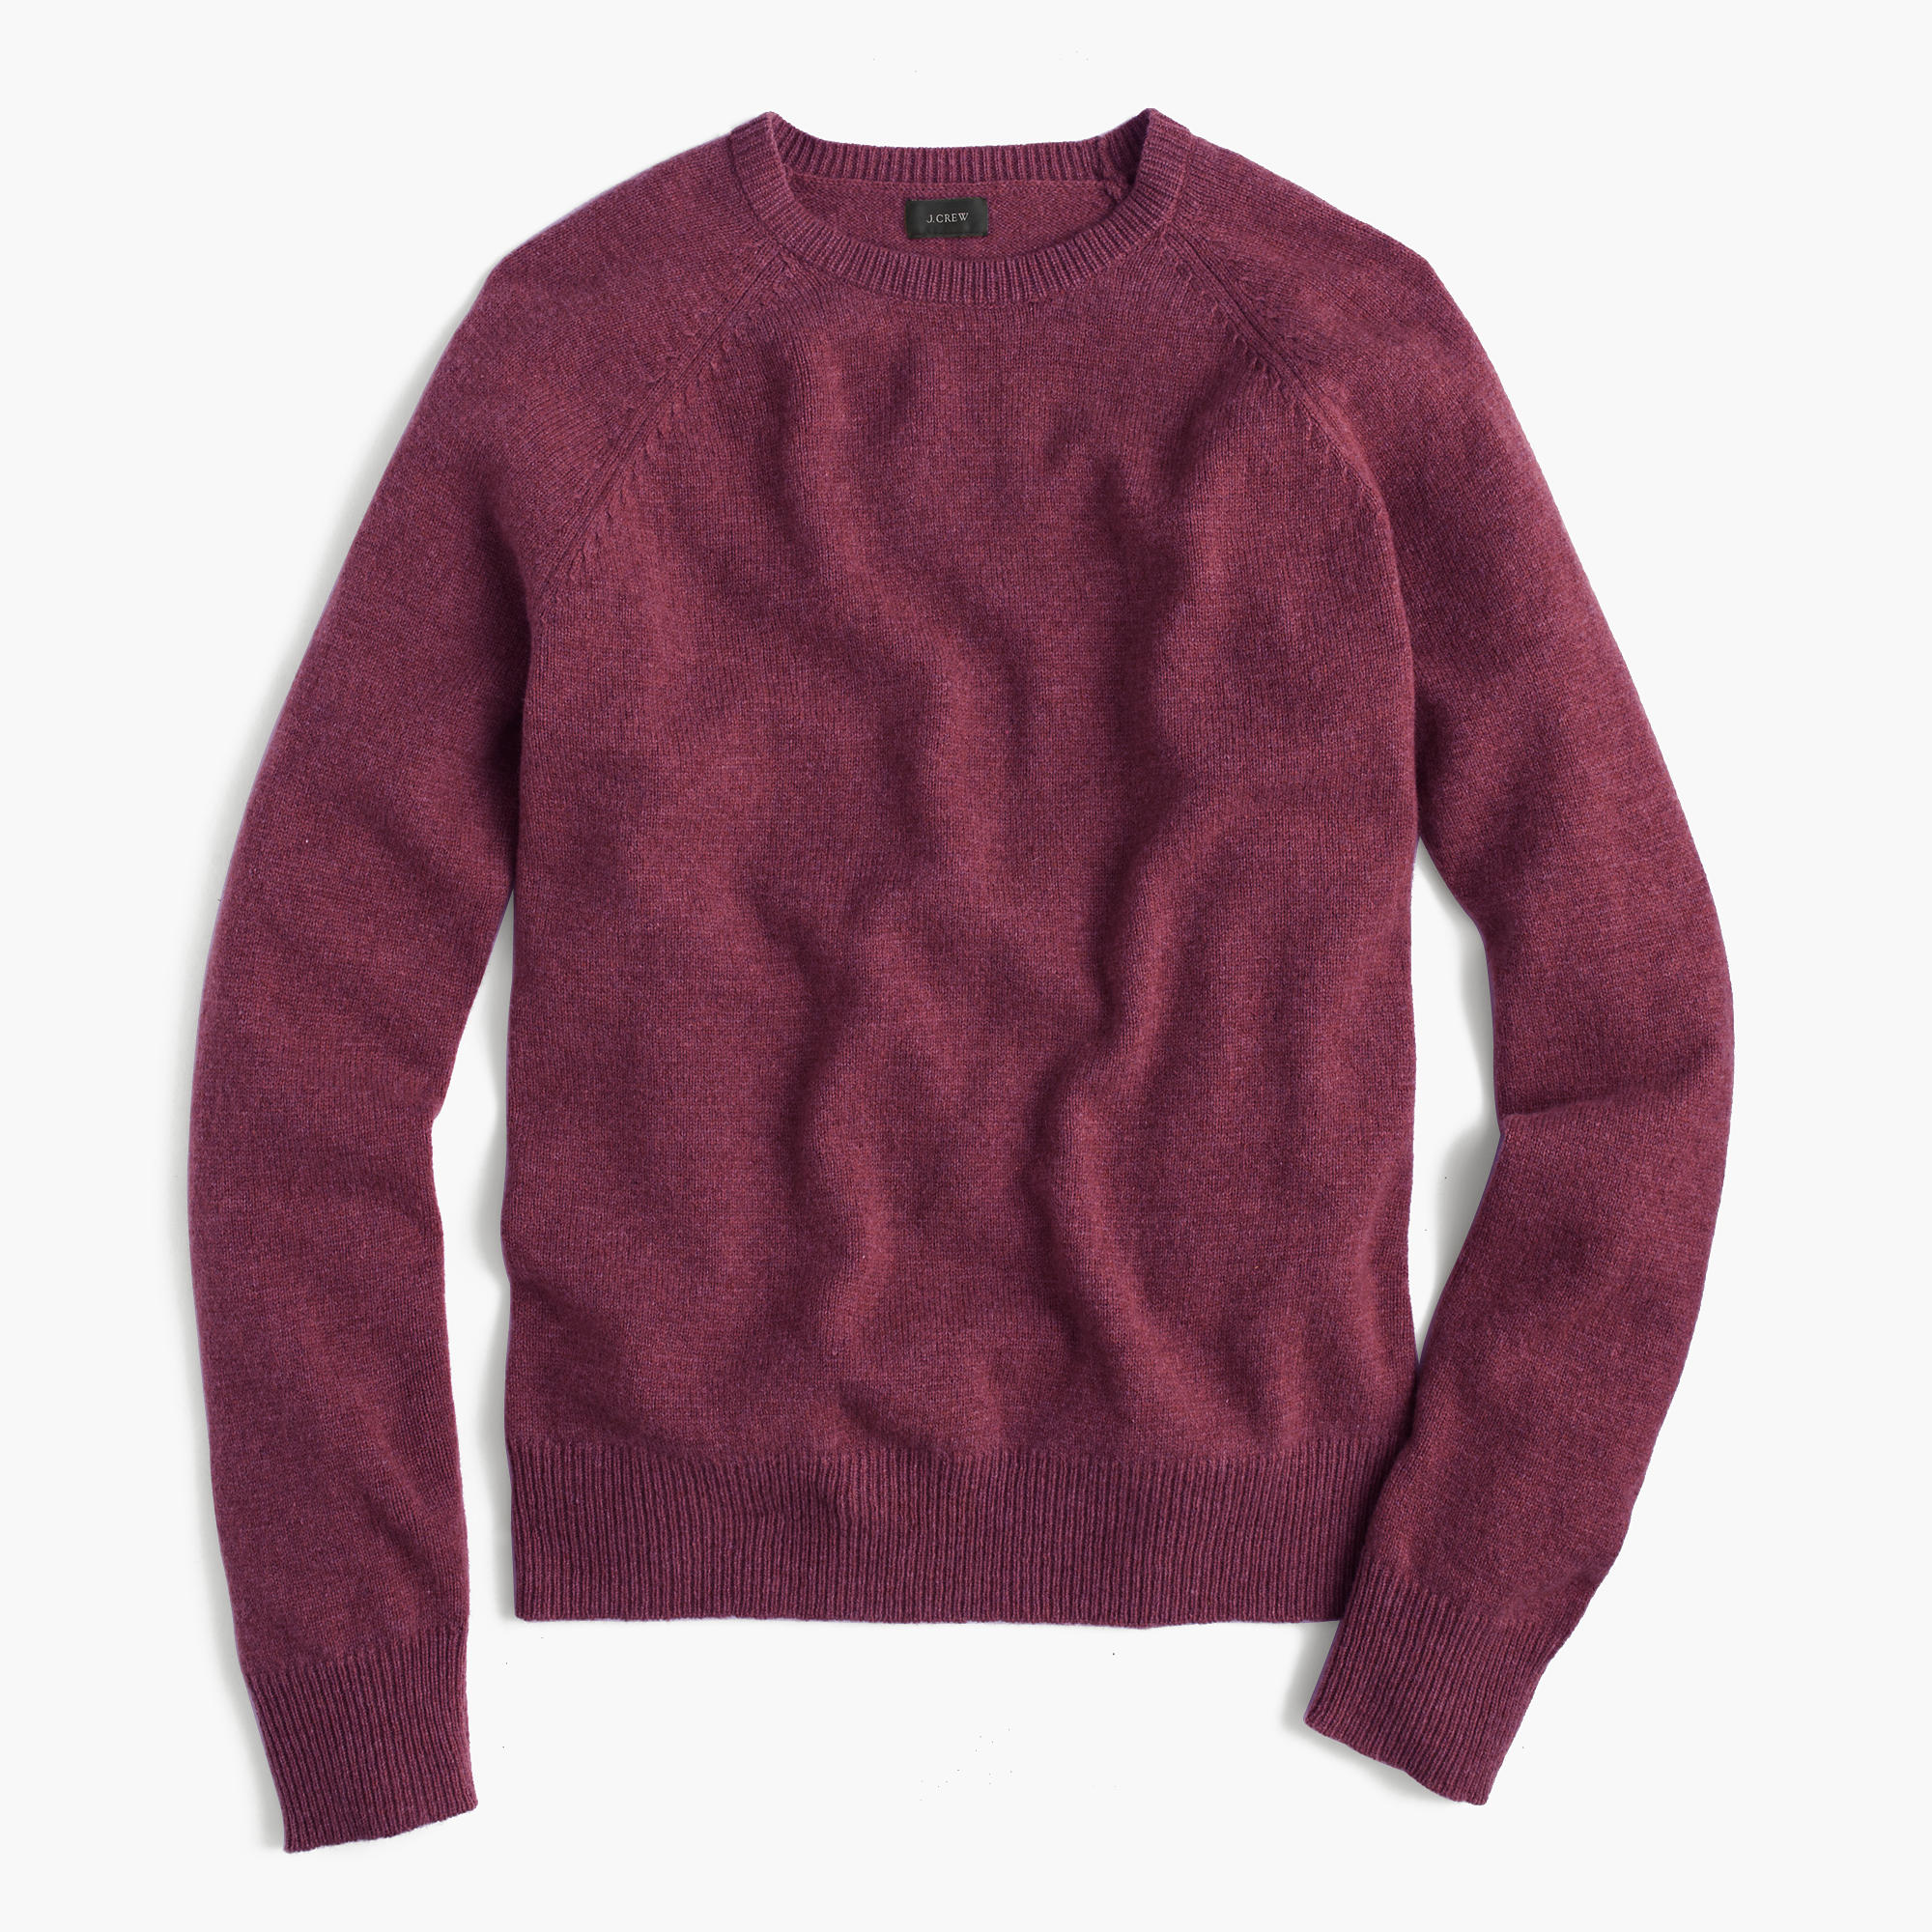 Lambswool Sweater : Men's Sweaters | J.Crew